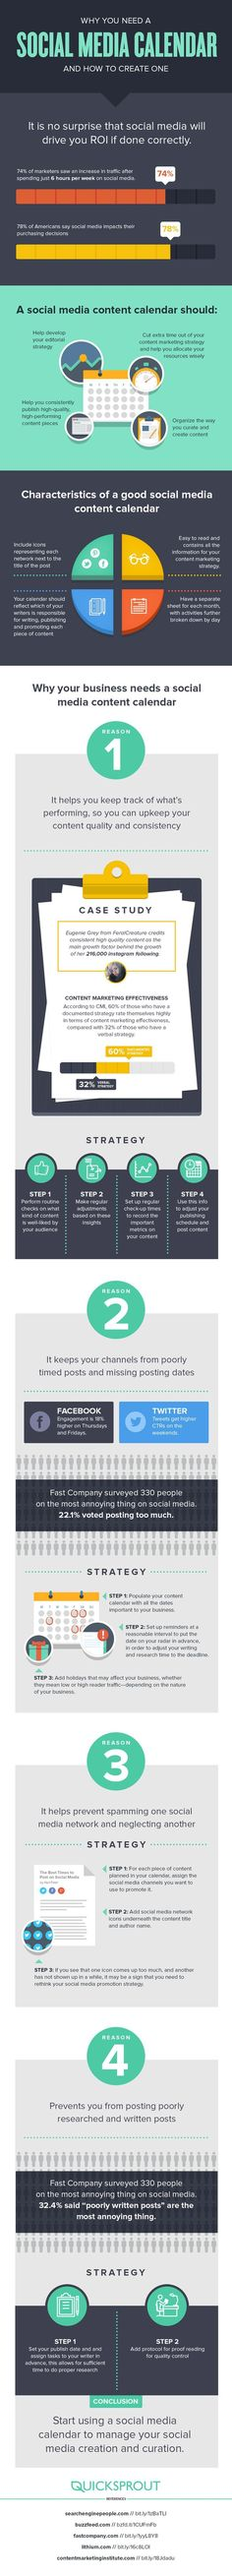 Why Your Business Needs a #SocialMedia Editorial Calendar and How to Create One - #infographic #contentmarketing